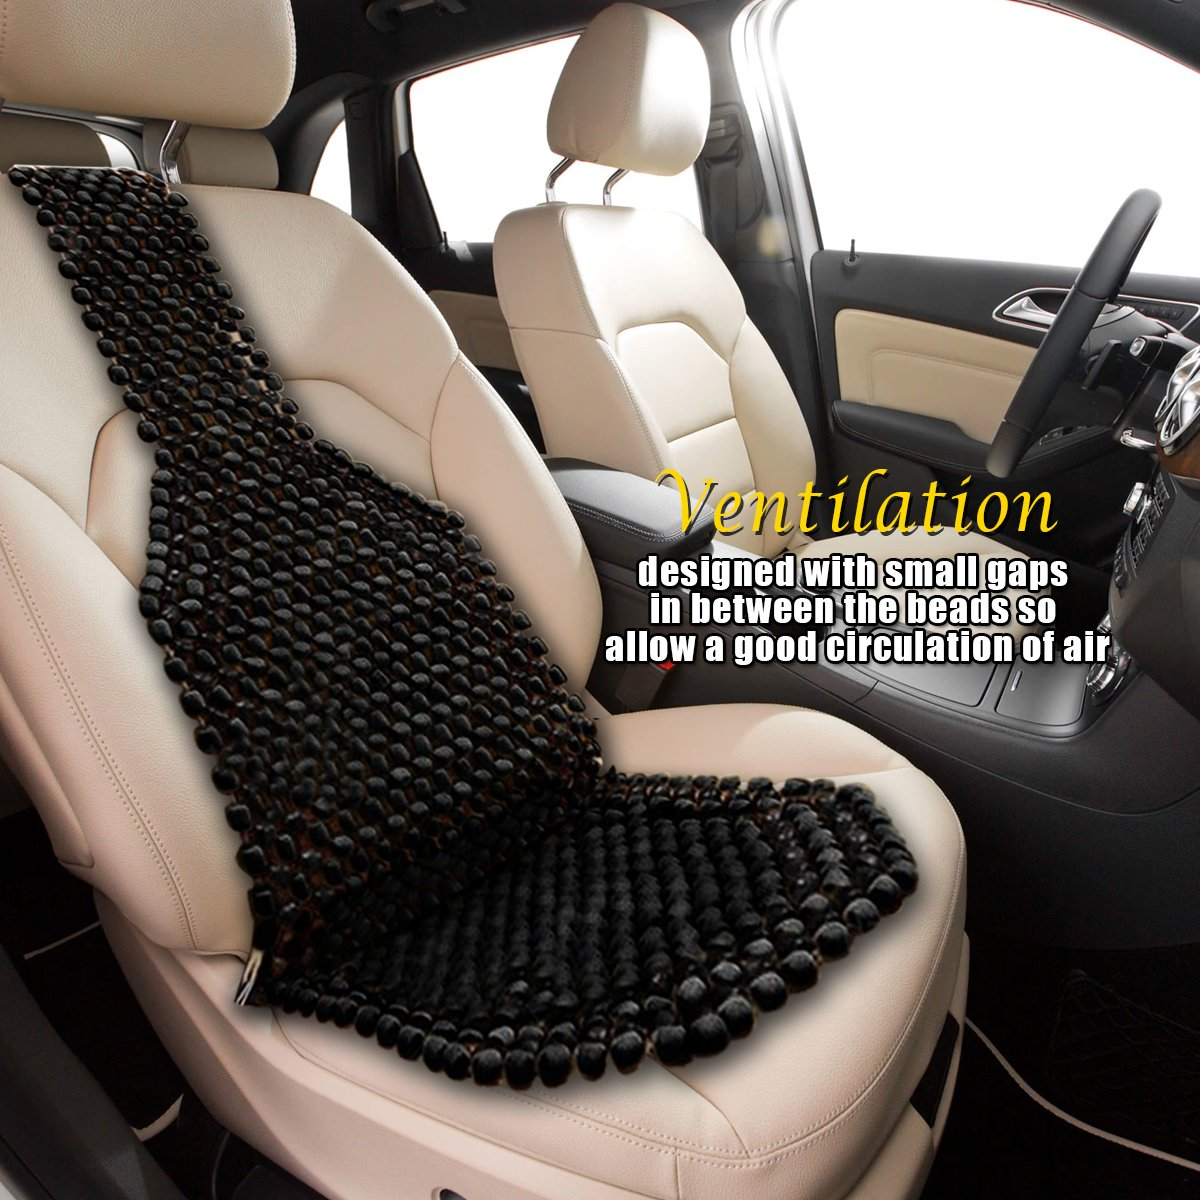 Universal Auto SUV Truck Office Home Wooden Bead Double Strung Cushion Cooling Stress Fee Reduces Fatigue VaygWay Beaded Car Seat Cover-Black Wood Cushion Massage Comfort Cover